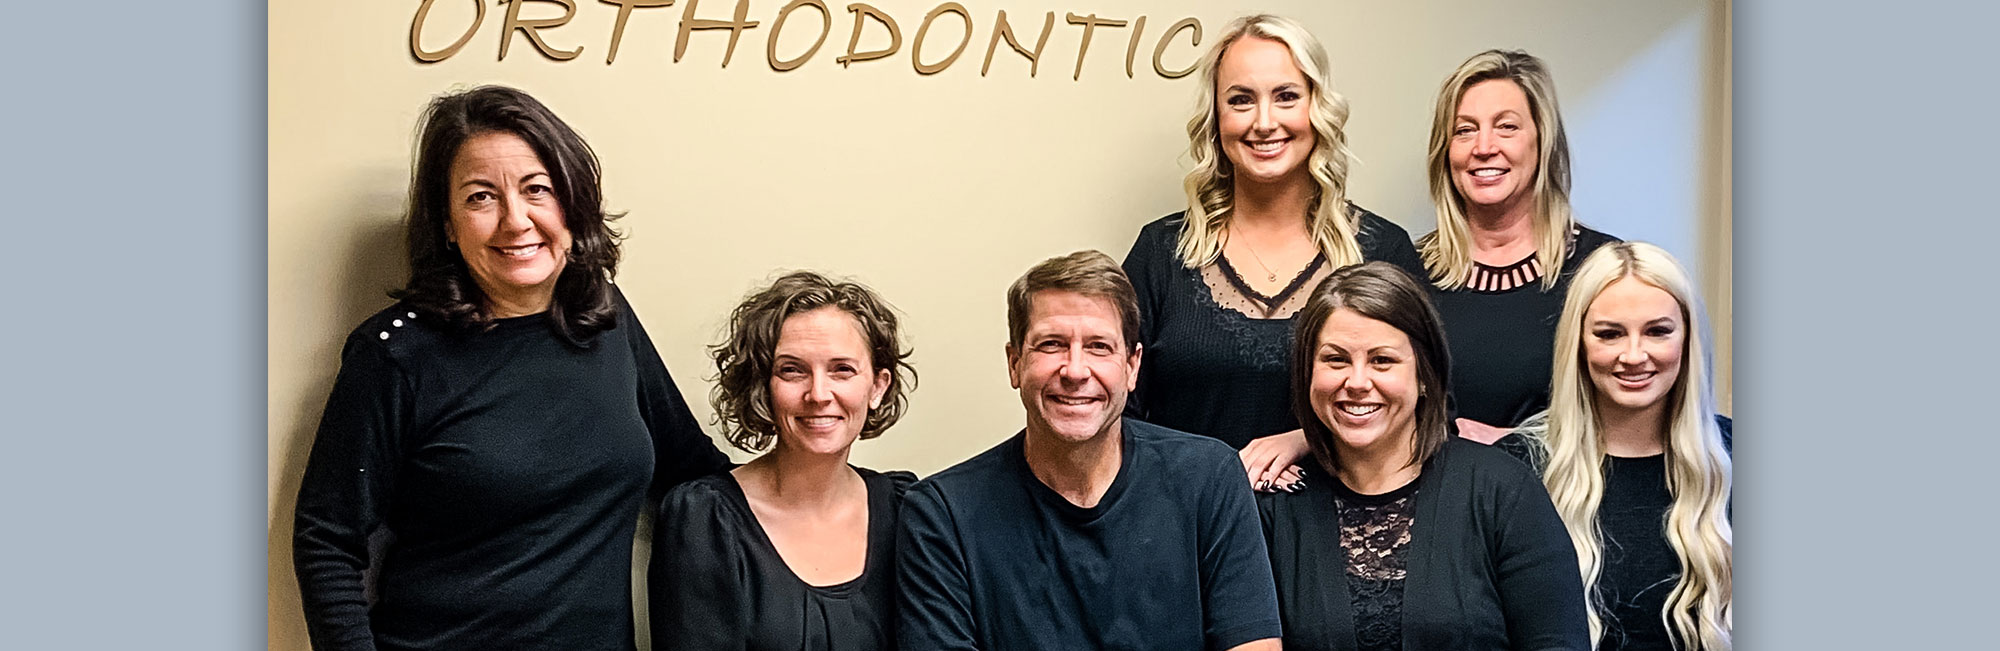 Drangsholt Orthodontics